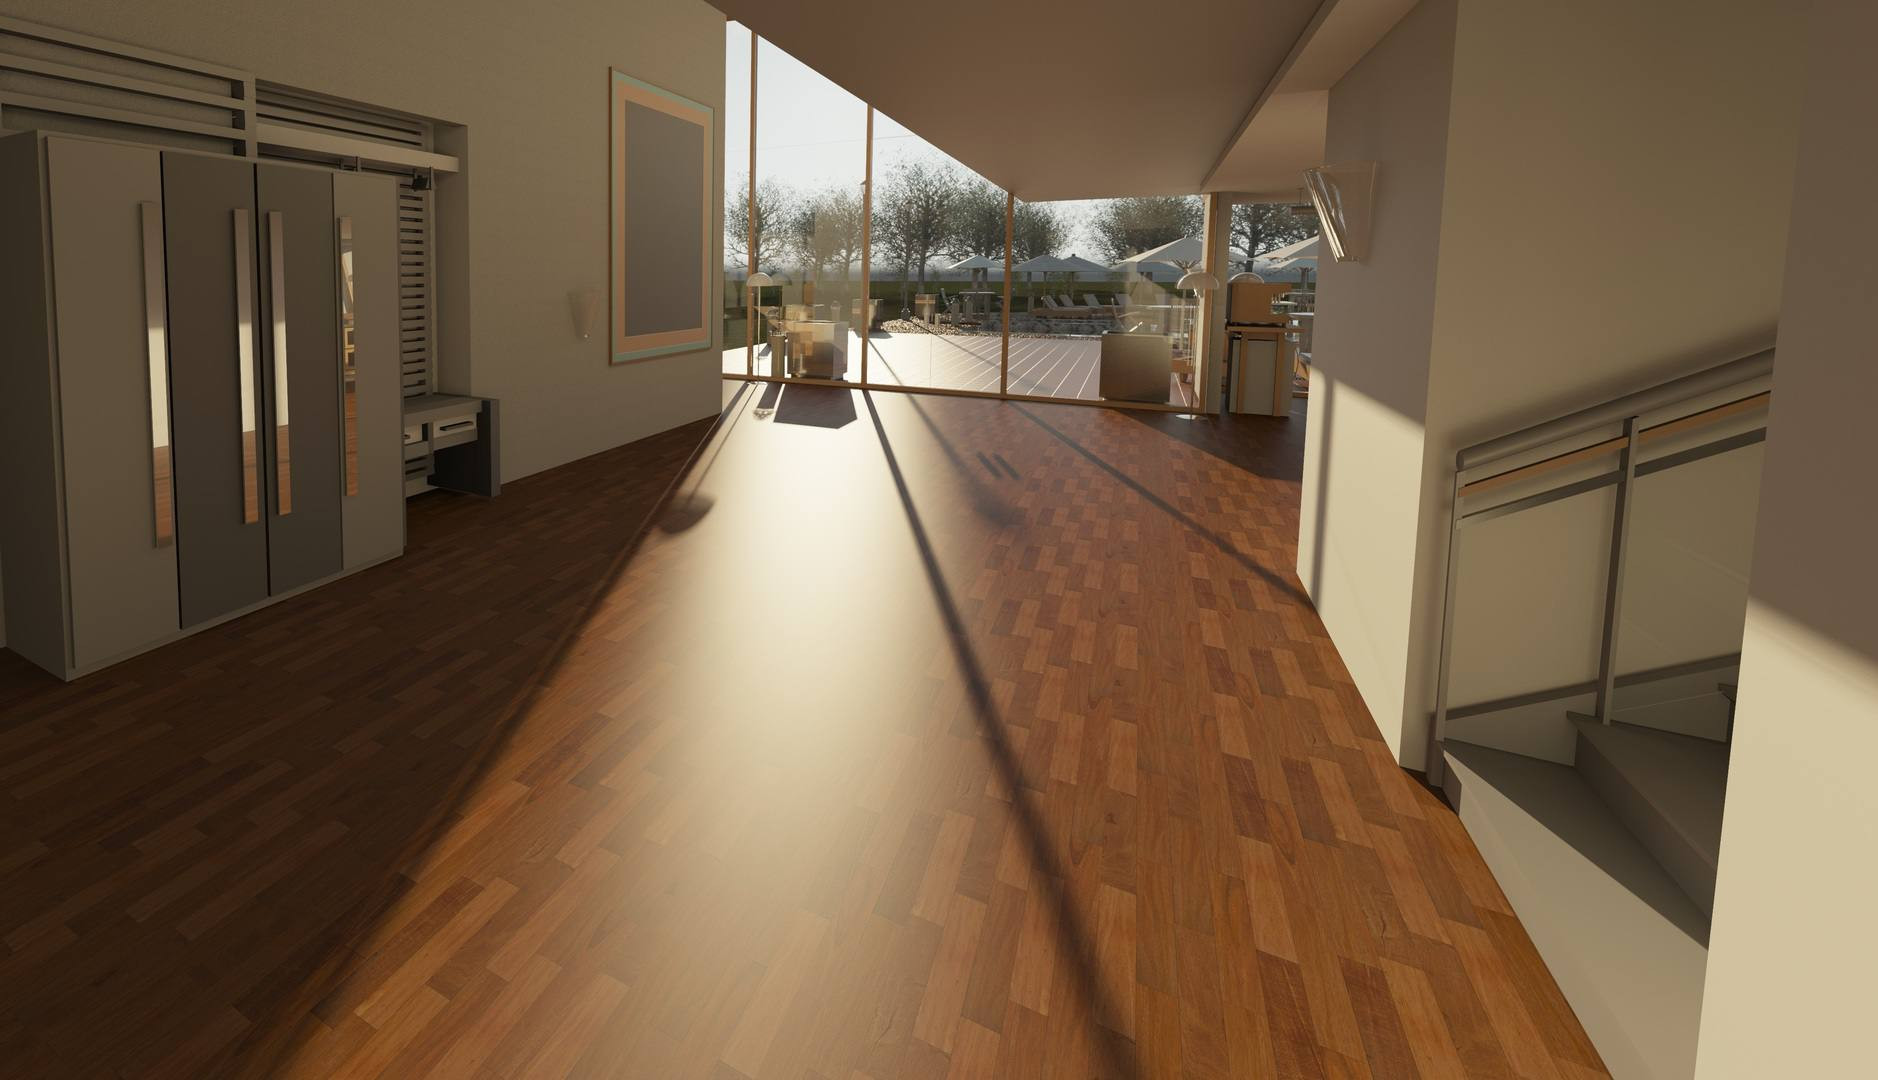 Hardwood Floor Finishing Supplies Of Common Flooring Types Currently Used In Renovation and Building for Architecture Wood House Floor Interior Window 917178 Pxhere Com 5ba27a2cc9e77c00503b27b9